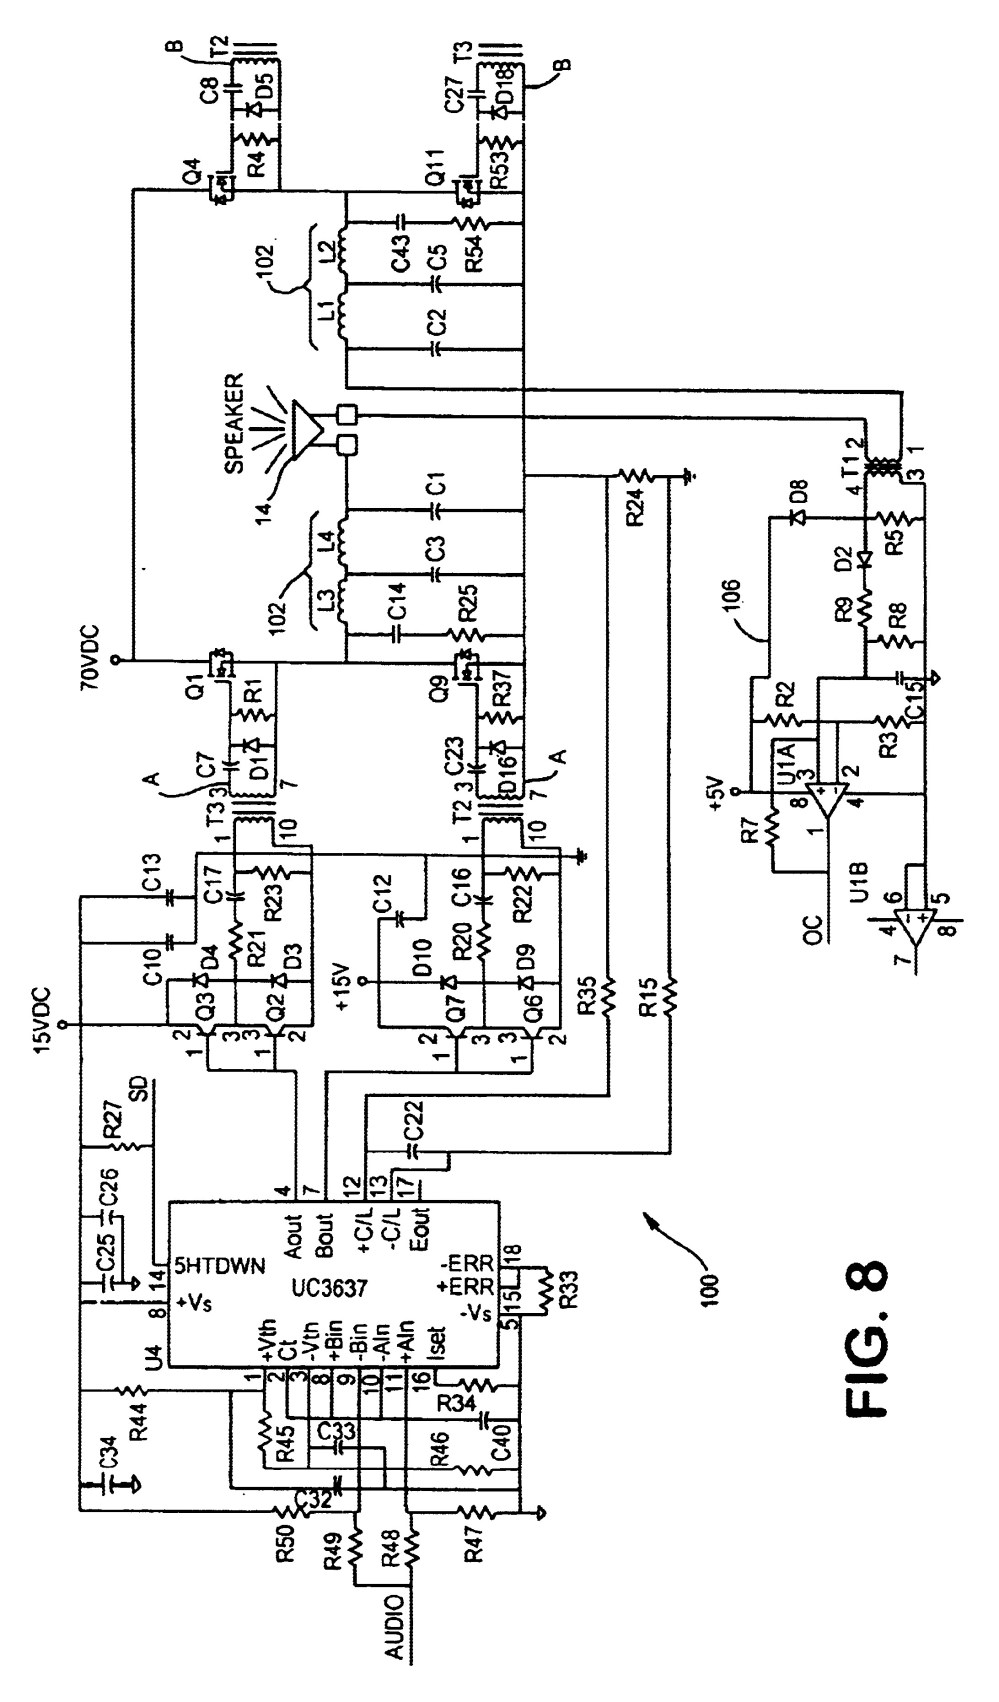 medium resolution of whelen siren 295hfsa1 wiring diagram schematic diagramwhelen 295hfs wiring diagram manual e books whelen pccs9np wiring